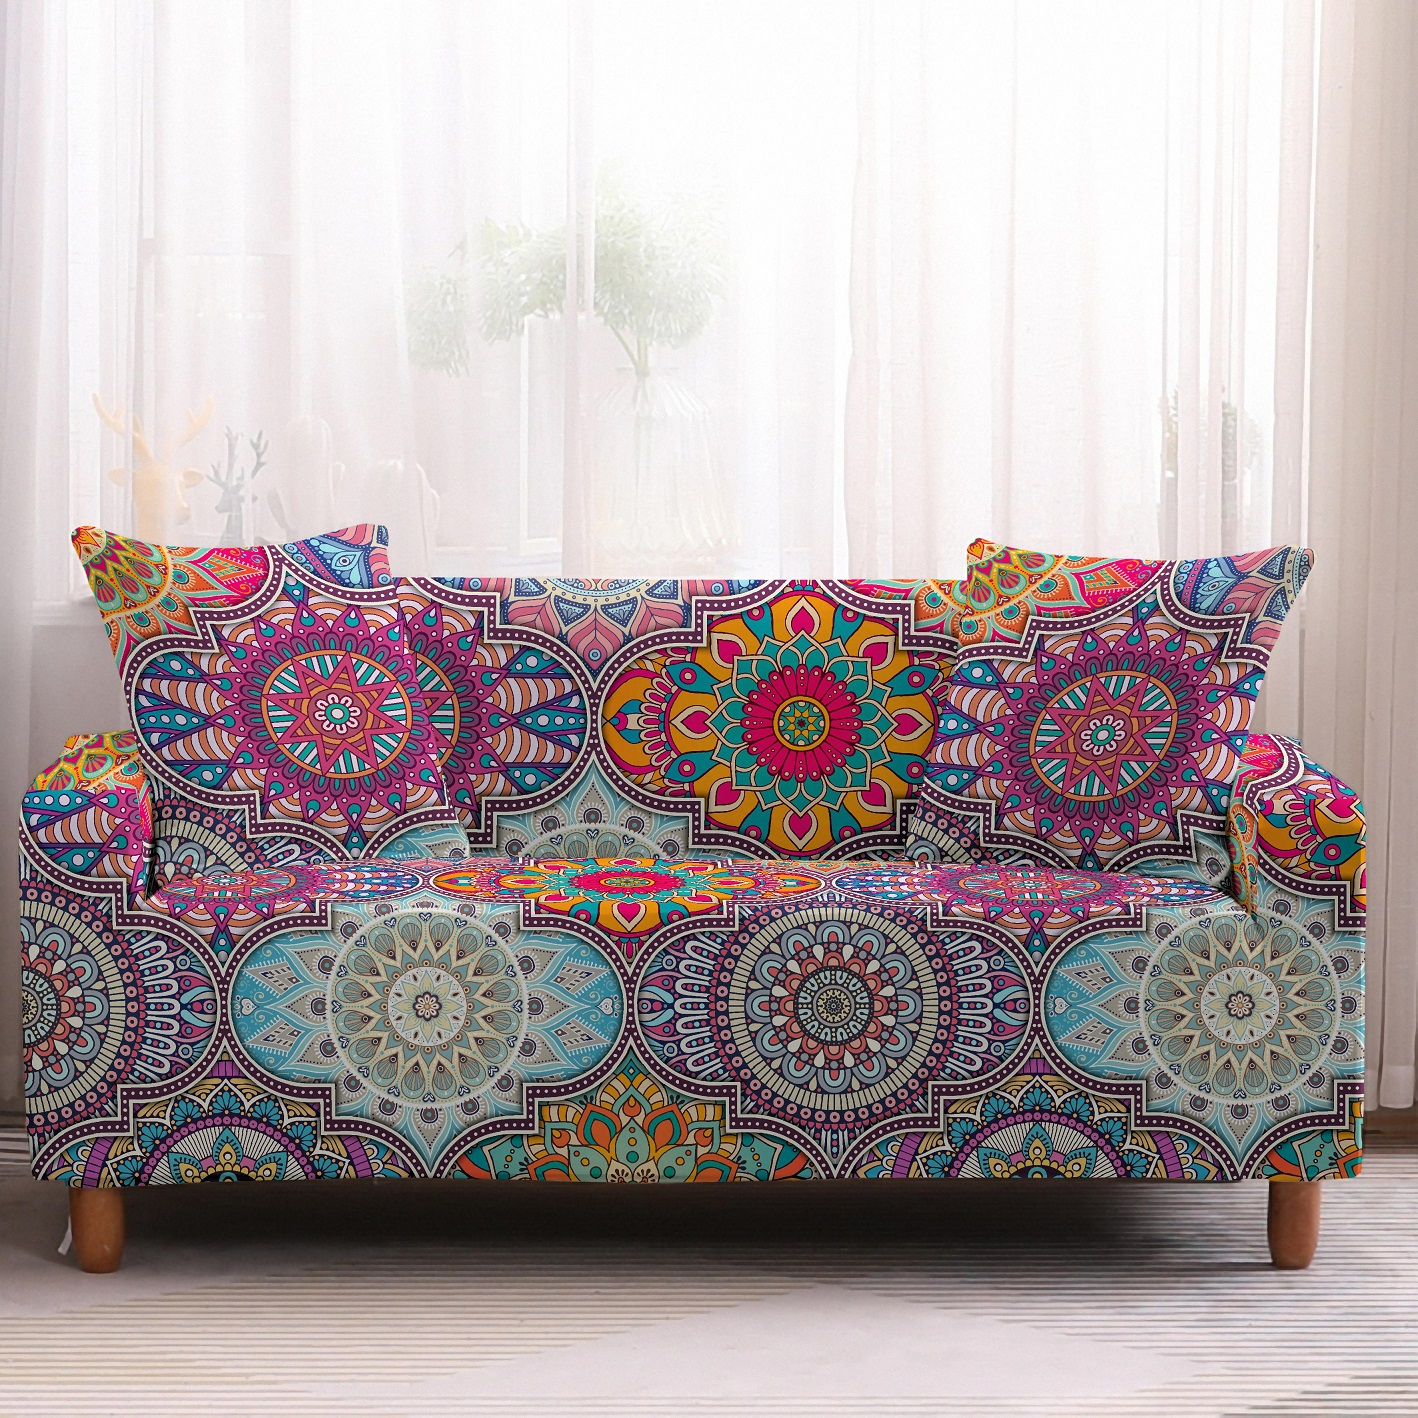 Bohemia Slipcovers Sofa Cover in Mandala Pattern to Protect Living Room Furniture from Stains and Dust 11